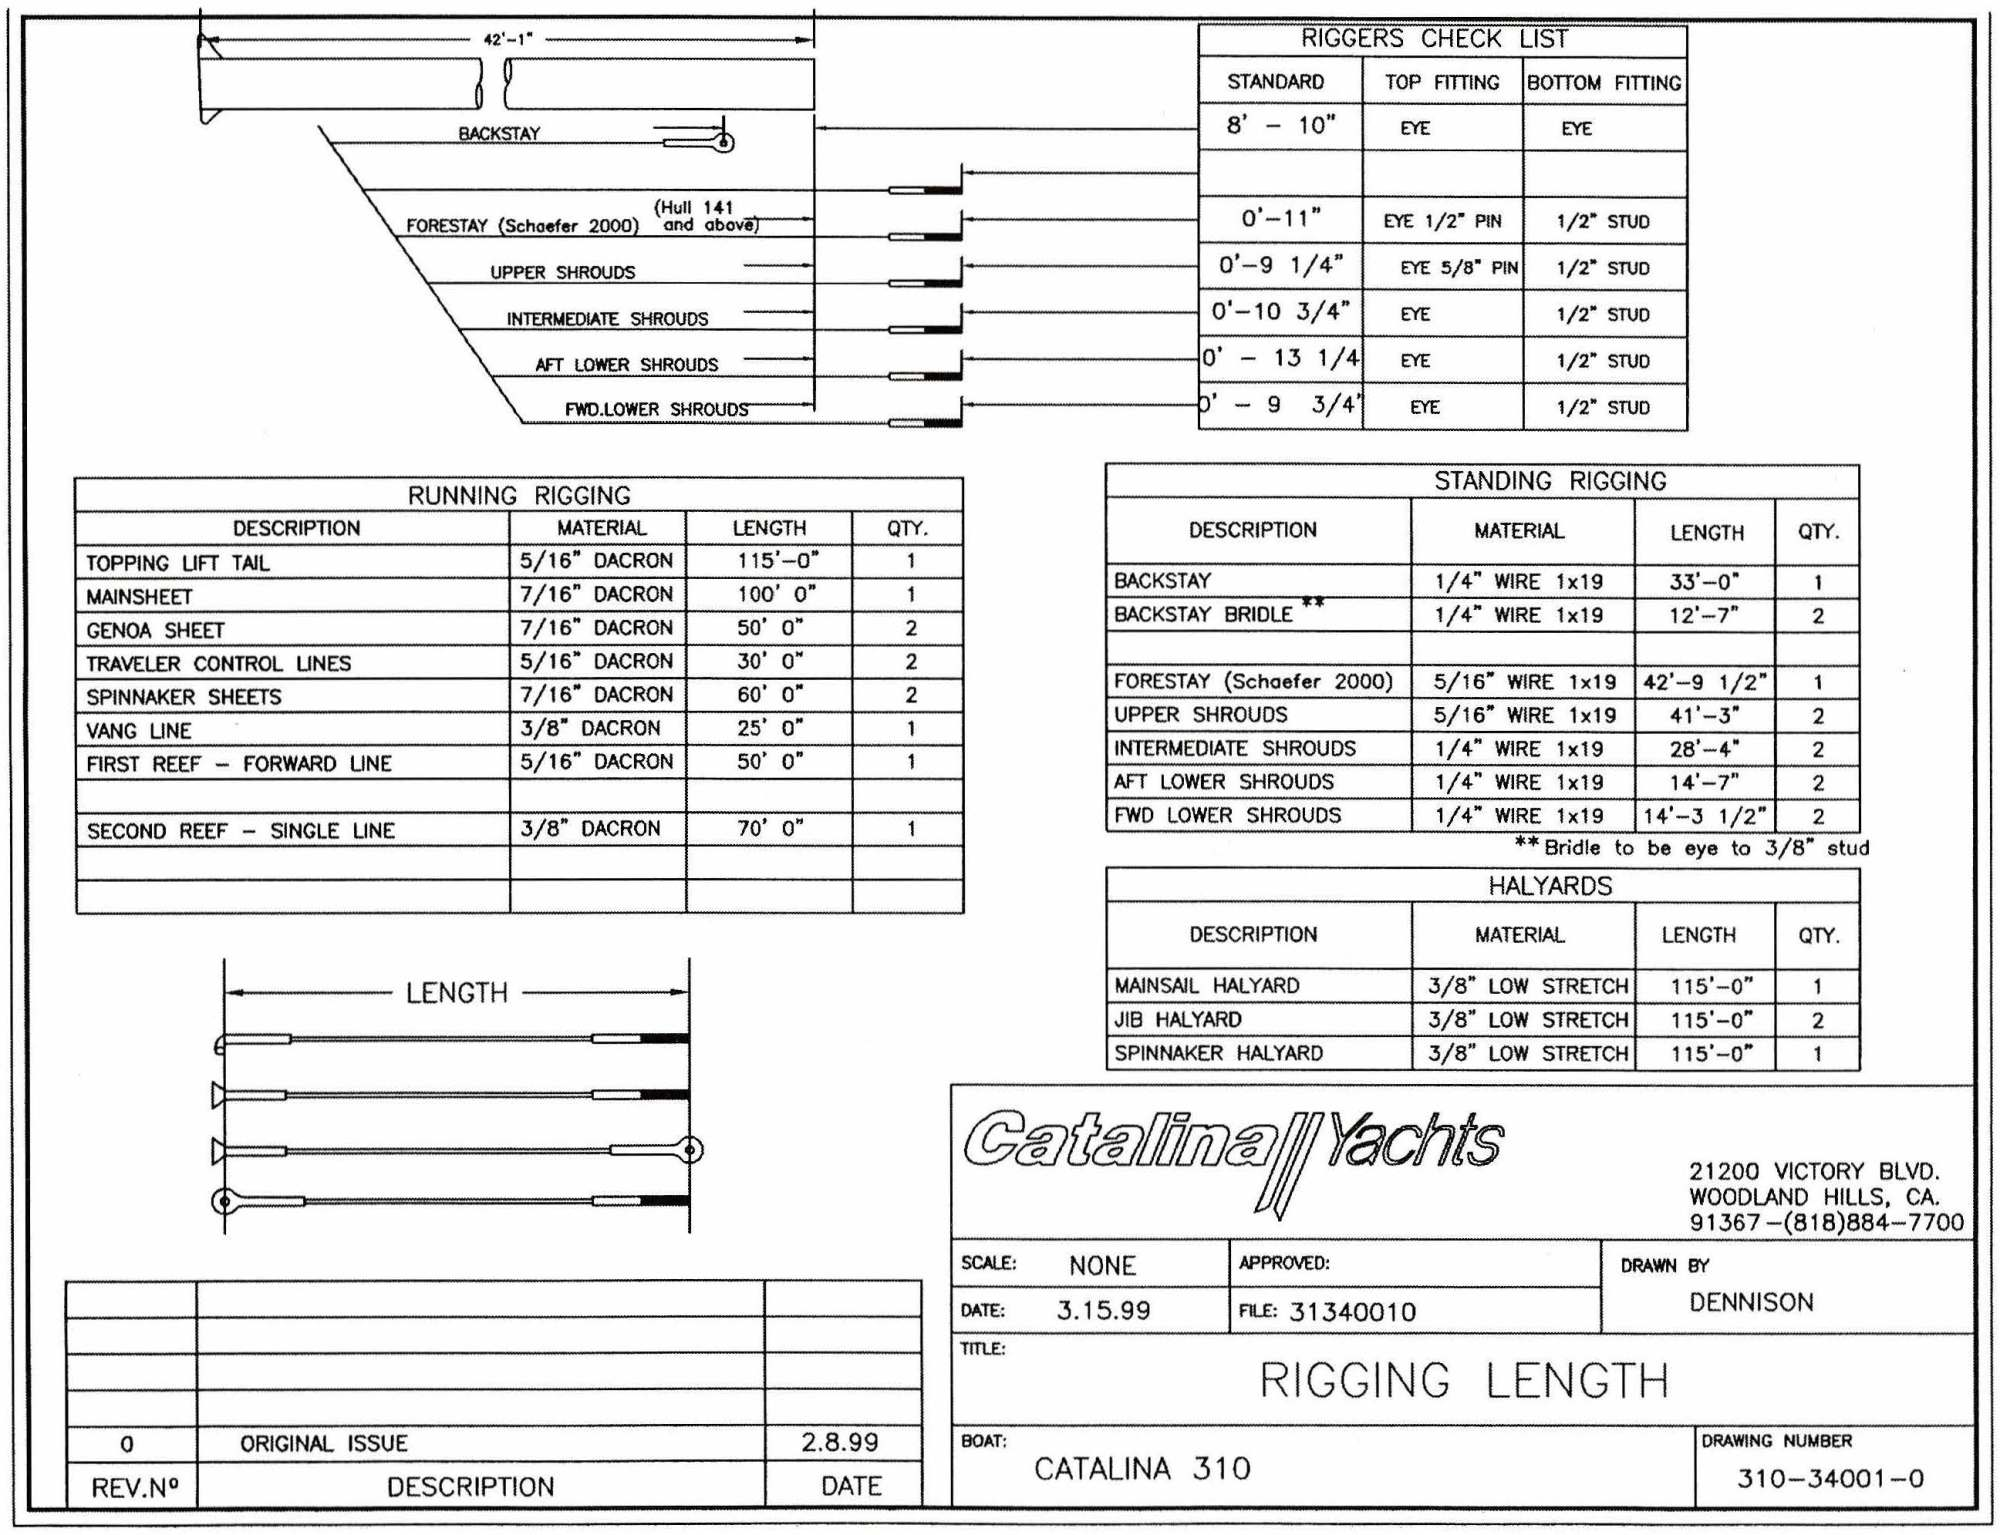 hight resolution of for the c310 they have a page in the manual that gives you all of the diameters and lengths of line you need for the running rigging